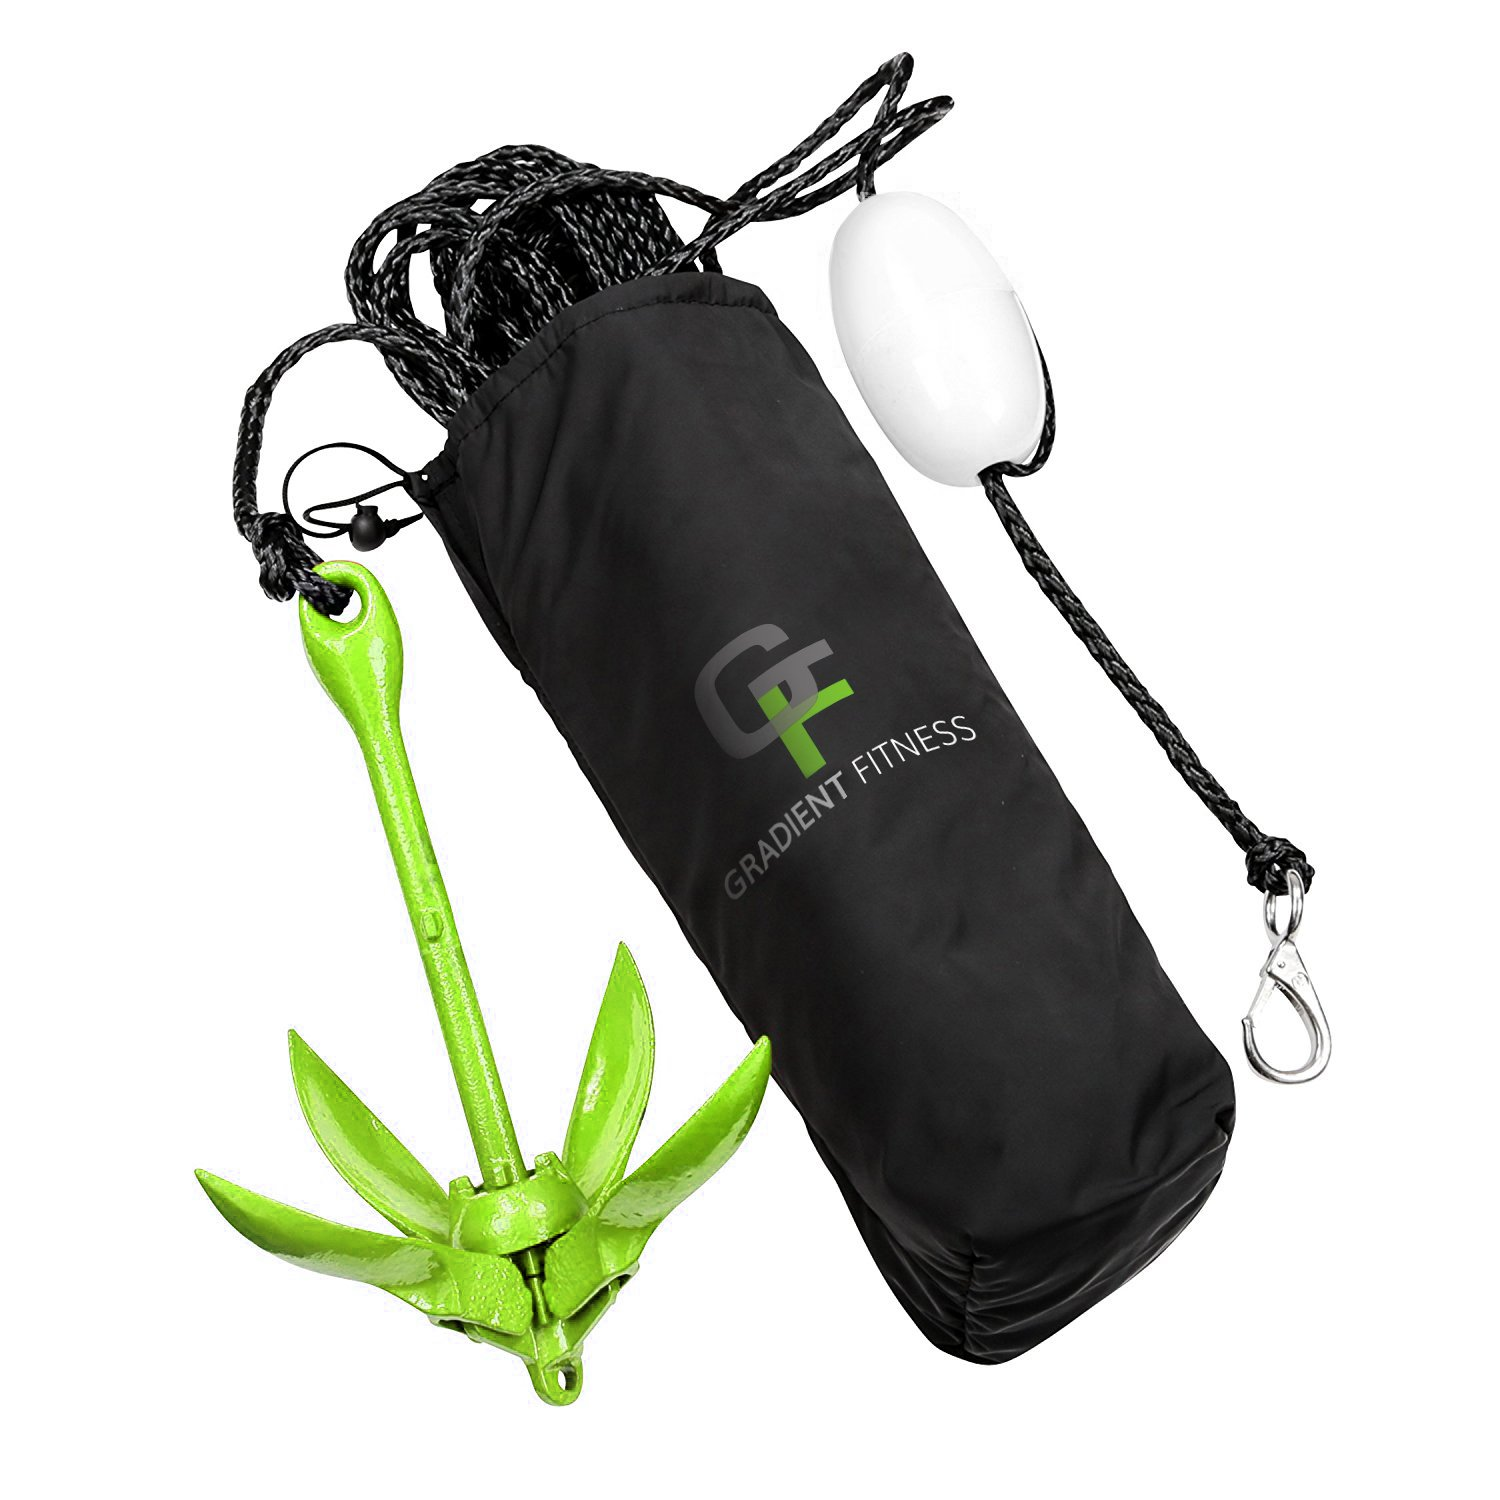 Gradient Fitness Marine Anchor, 3.5 lb Folding Anchor, Grapnel Anchor Kit for Kayaks, Canoes, Paddle Boards (SUP), (Green, 3.5 lbs) by Gradient Fitness